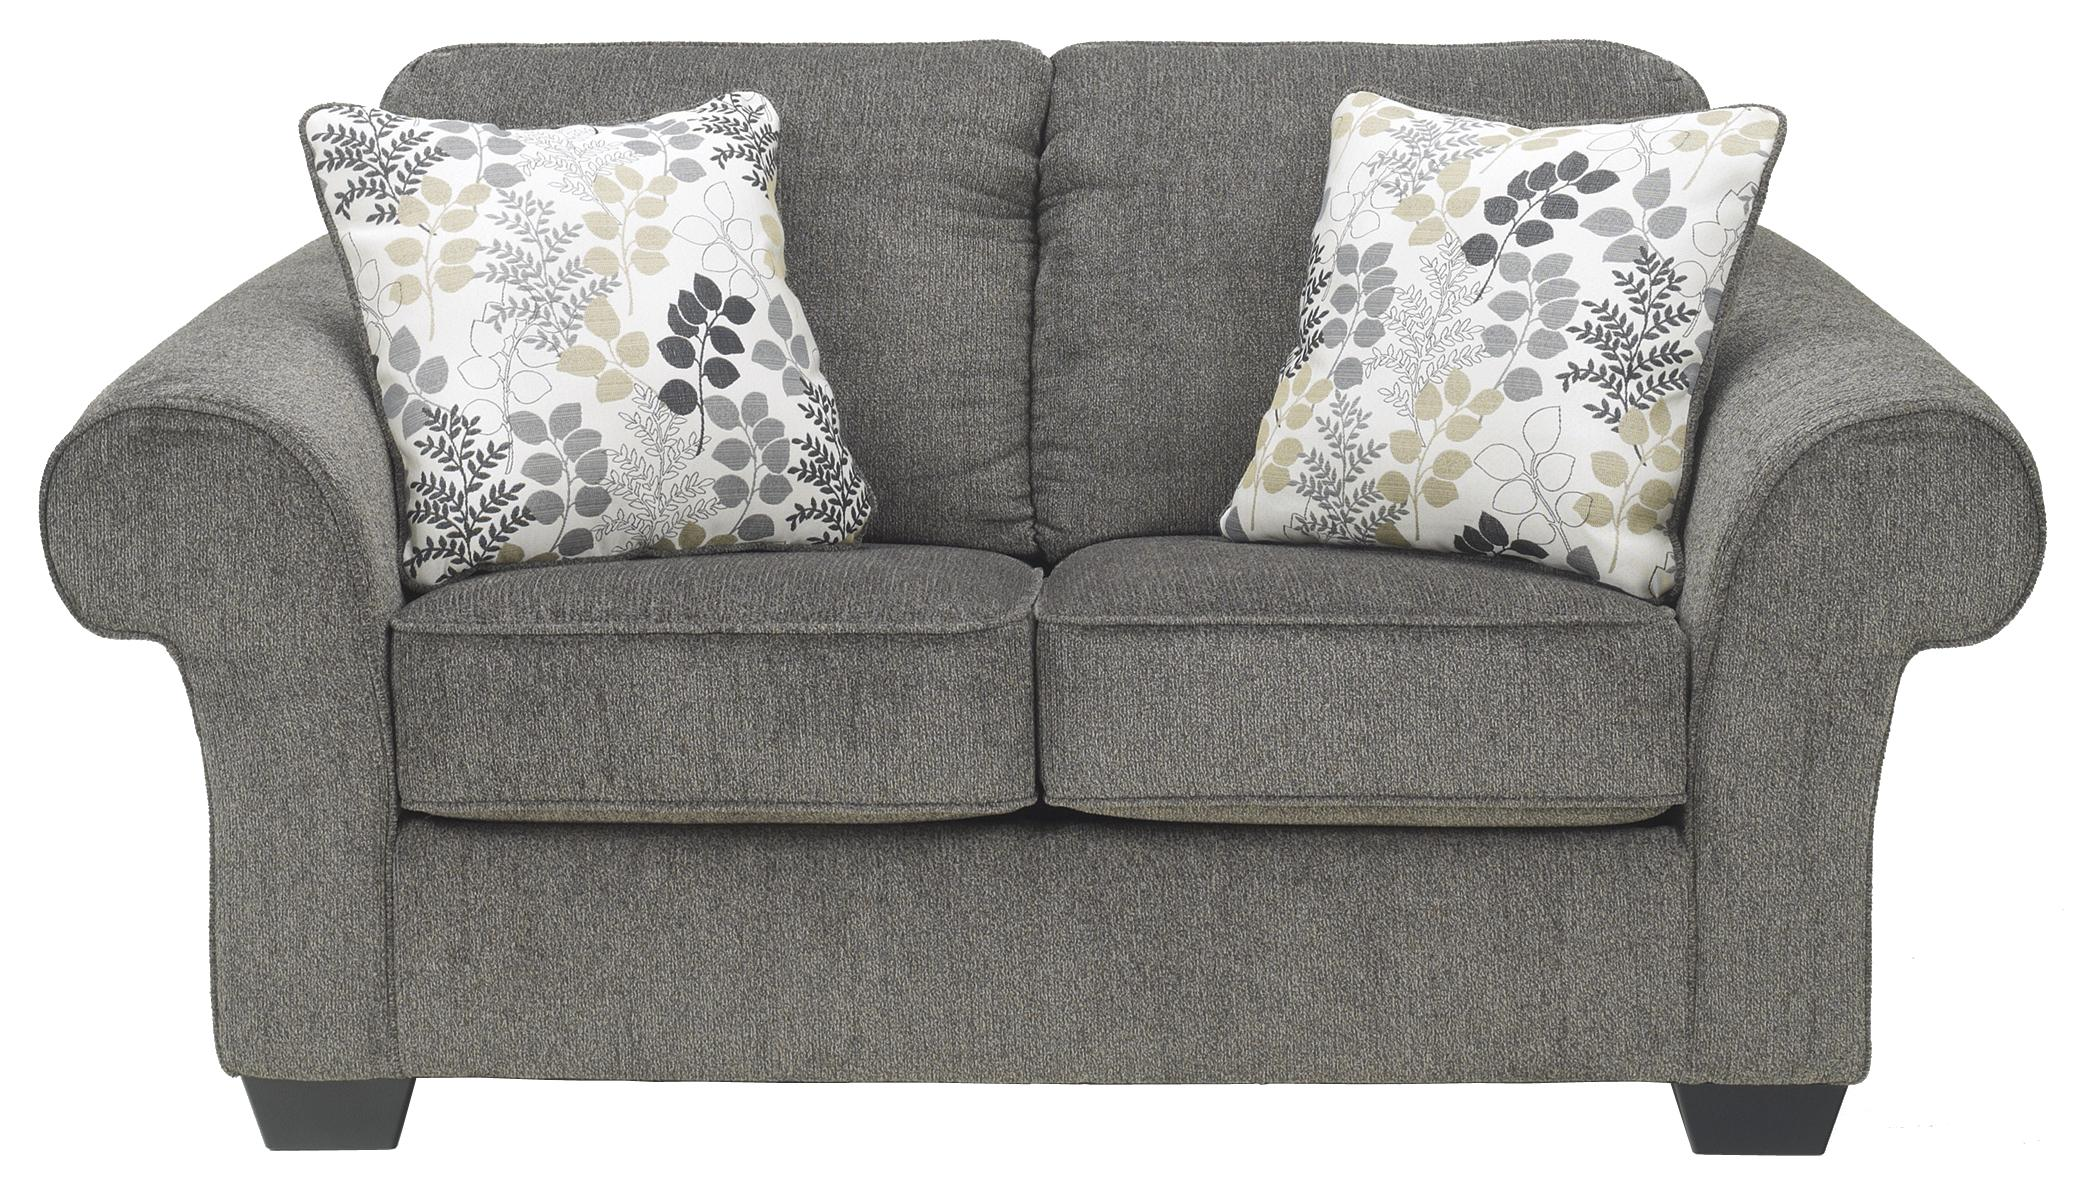 Signature Design by Ashley Makonnen - Charcoal Loveseat - Item Number: 7800035